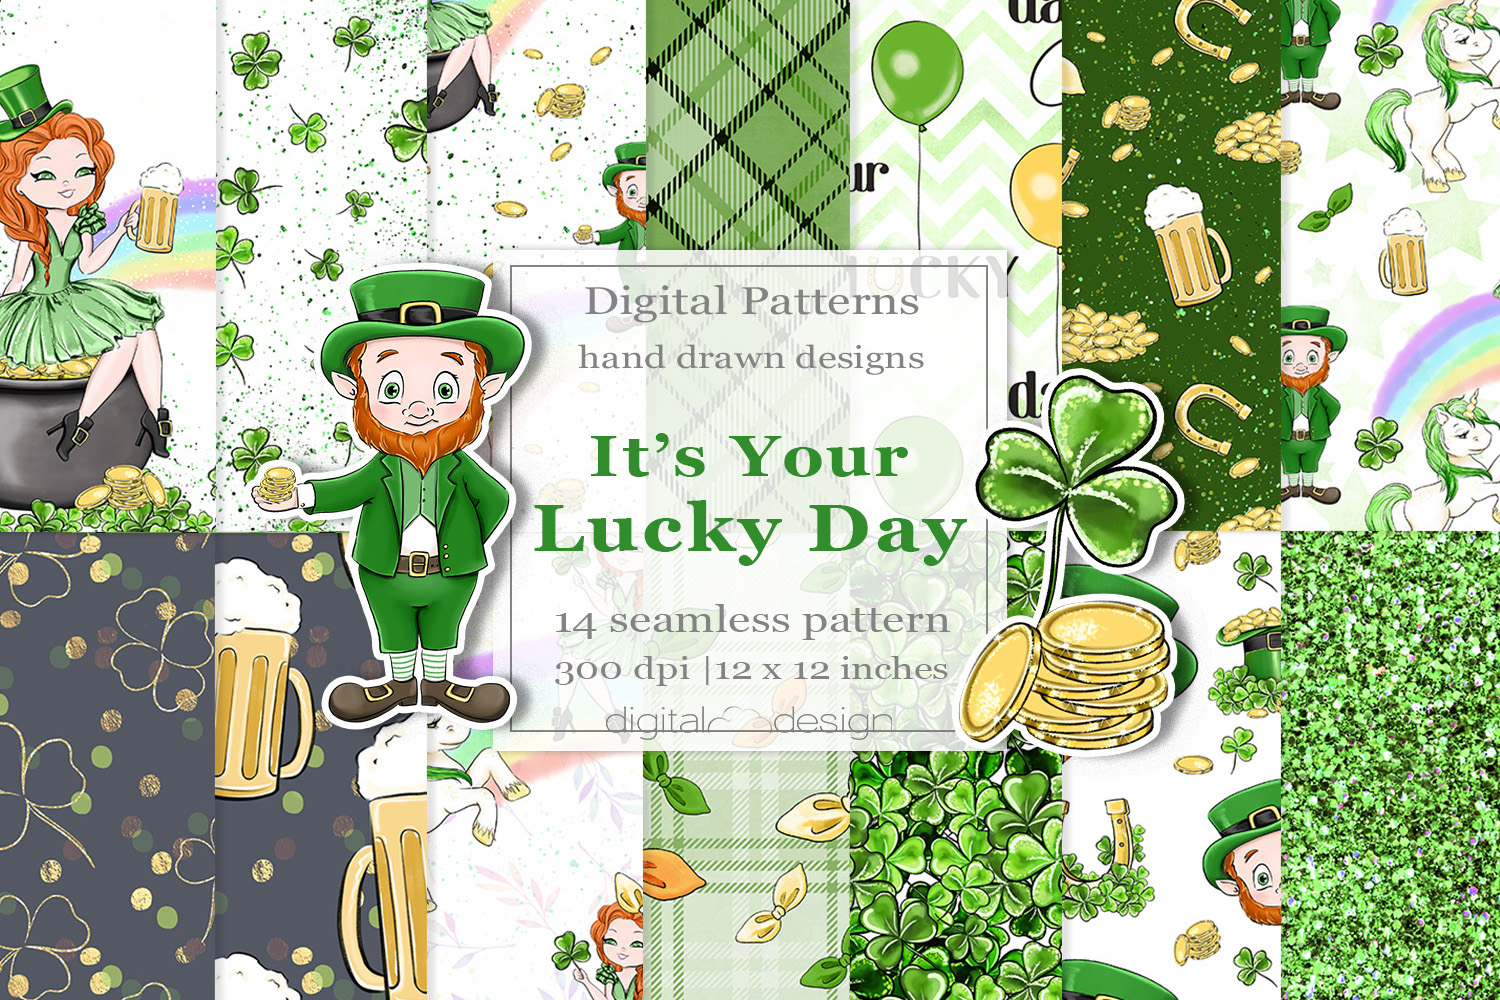 Its Your Lucky Day - Digital Pattern example image 1